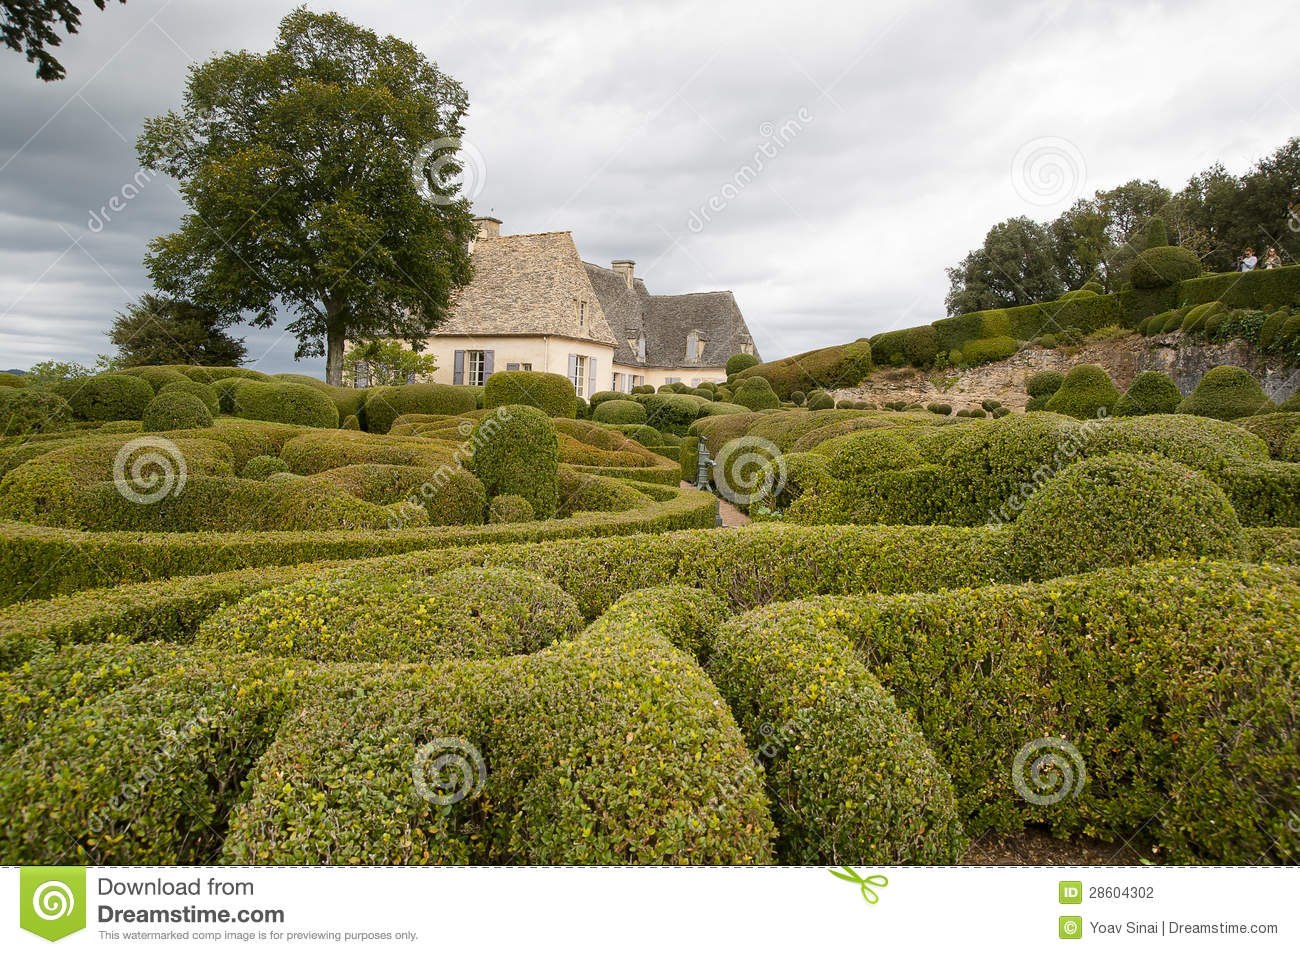 Le jardin marqueyssac france stock photography image for Jardin france